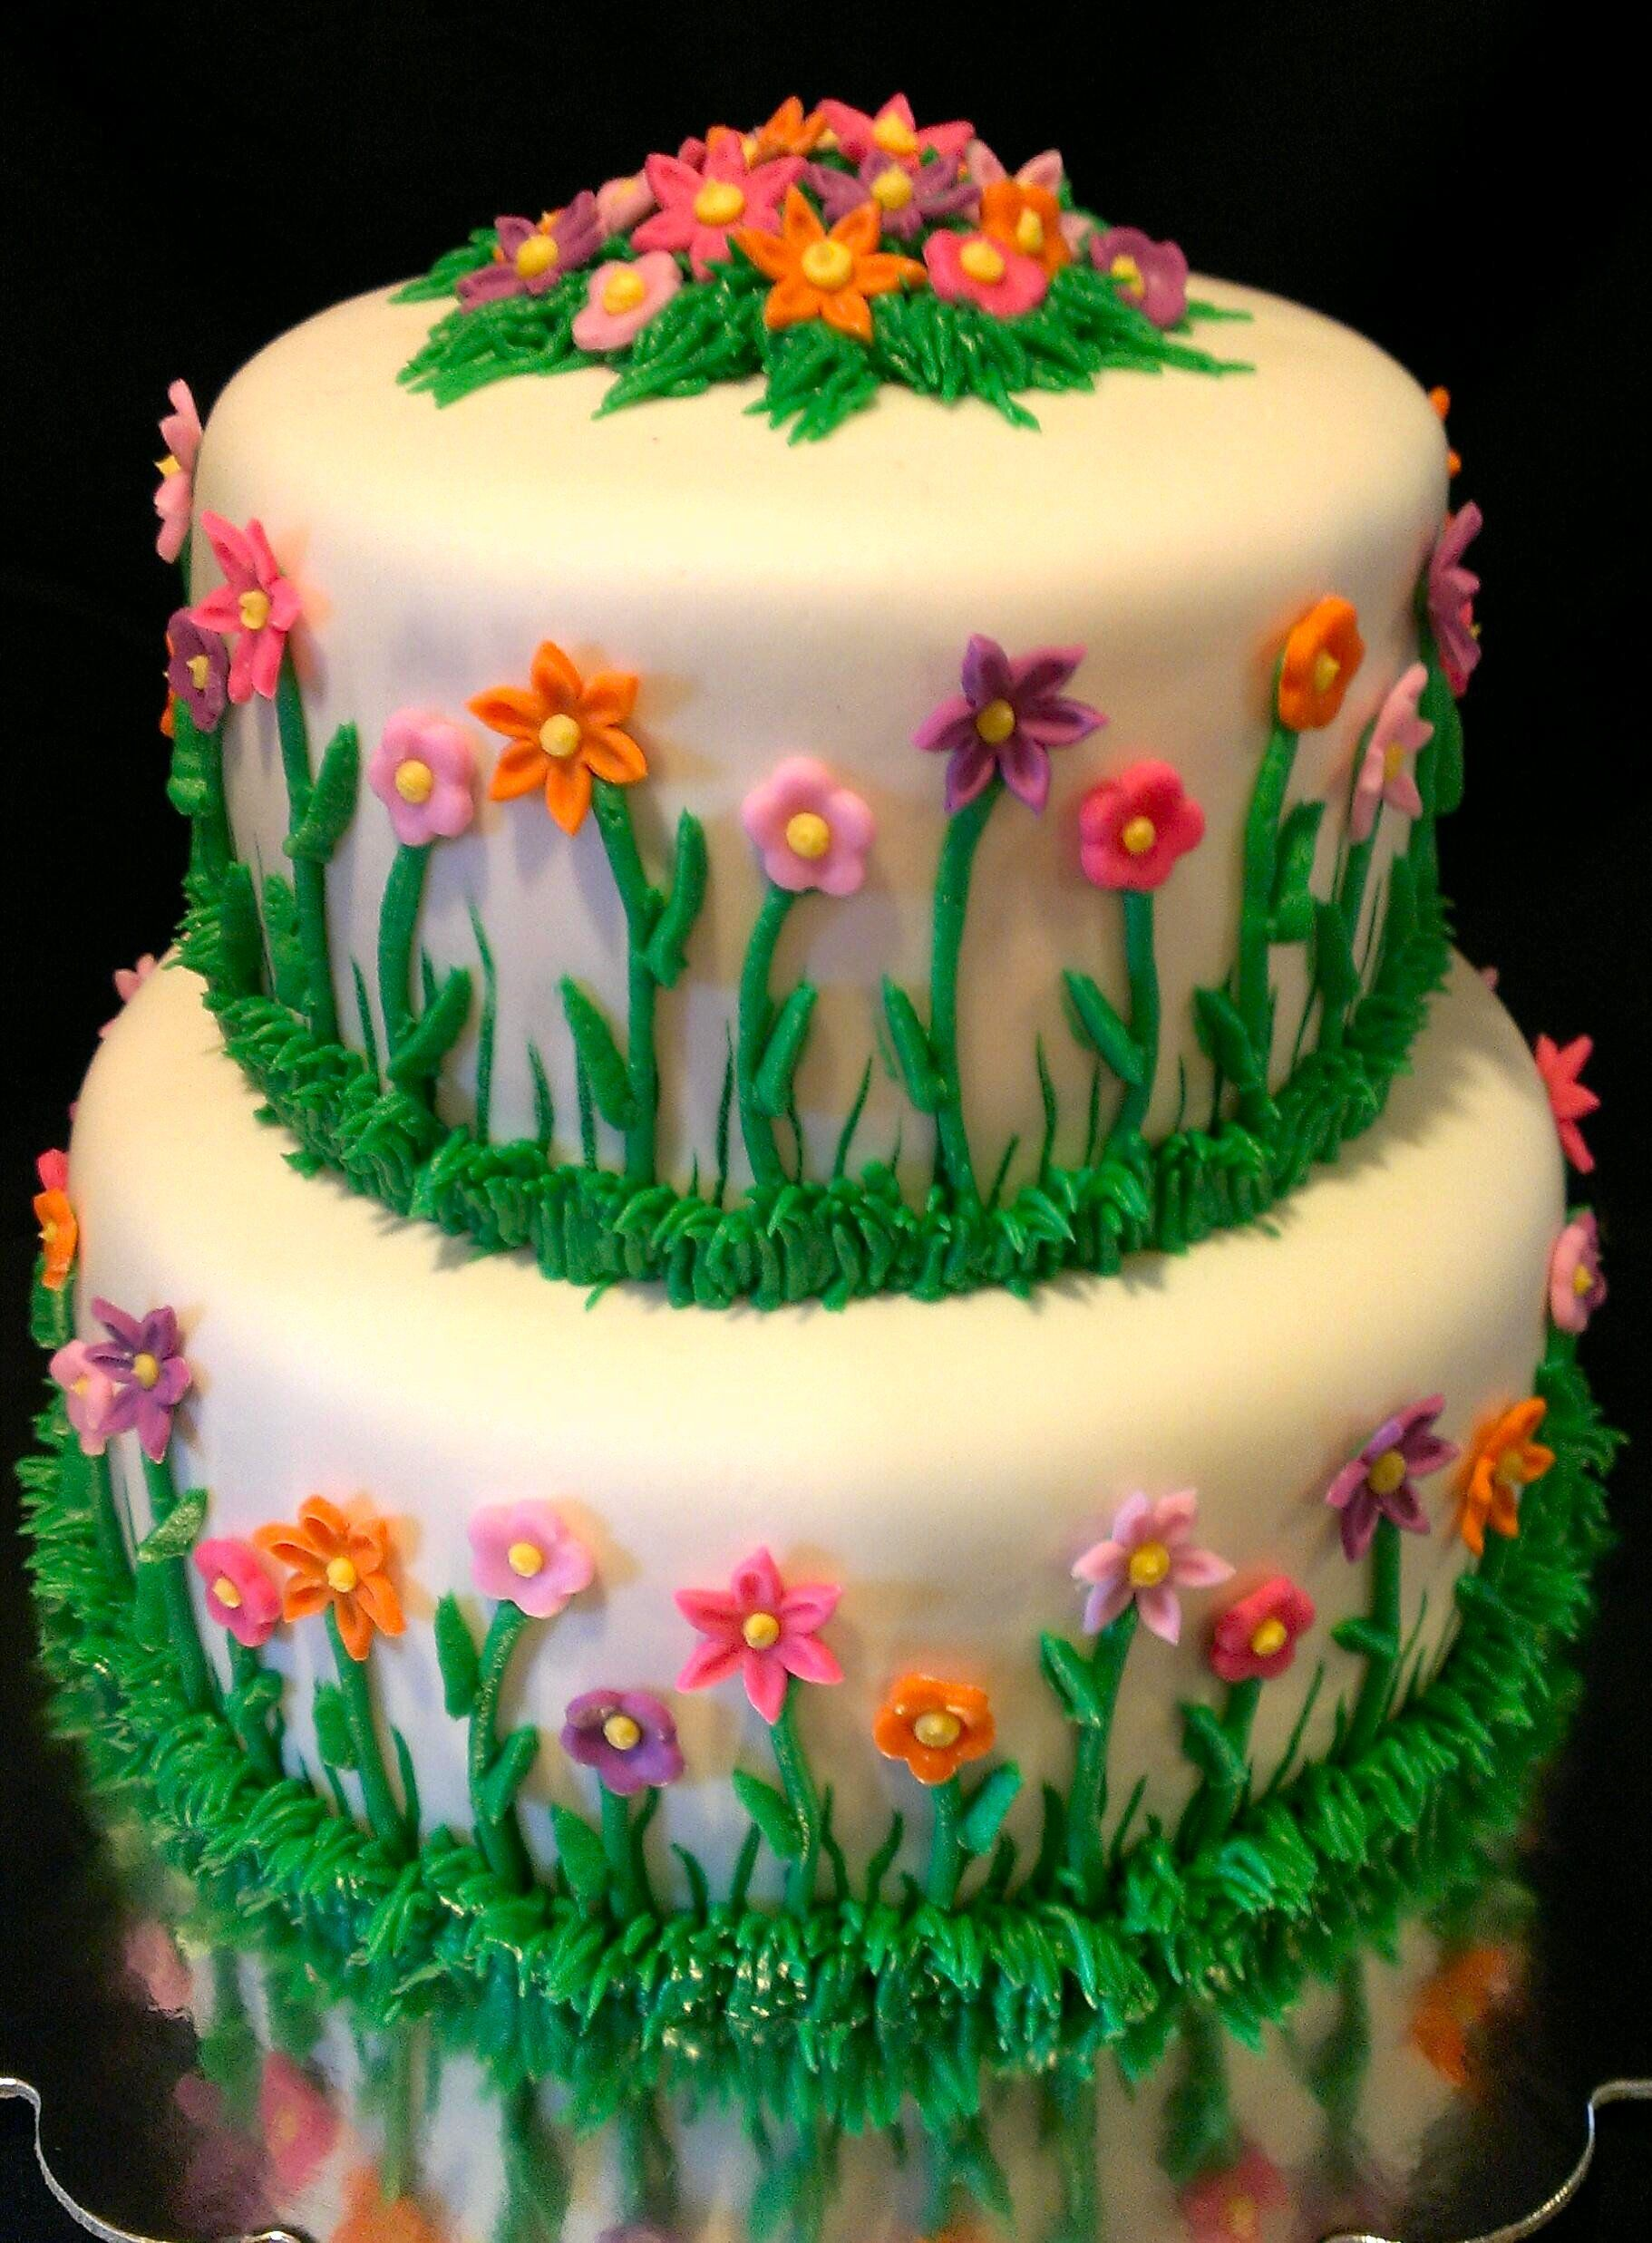 Order This Themed Based Flowers Cakes Online From CakenGiftsin